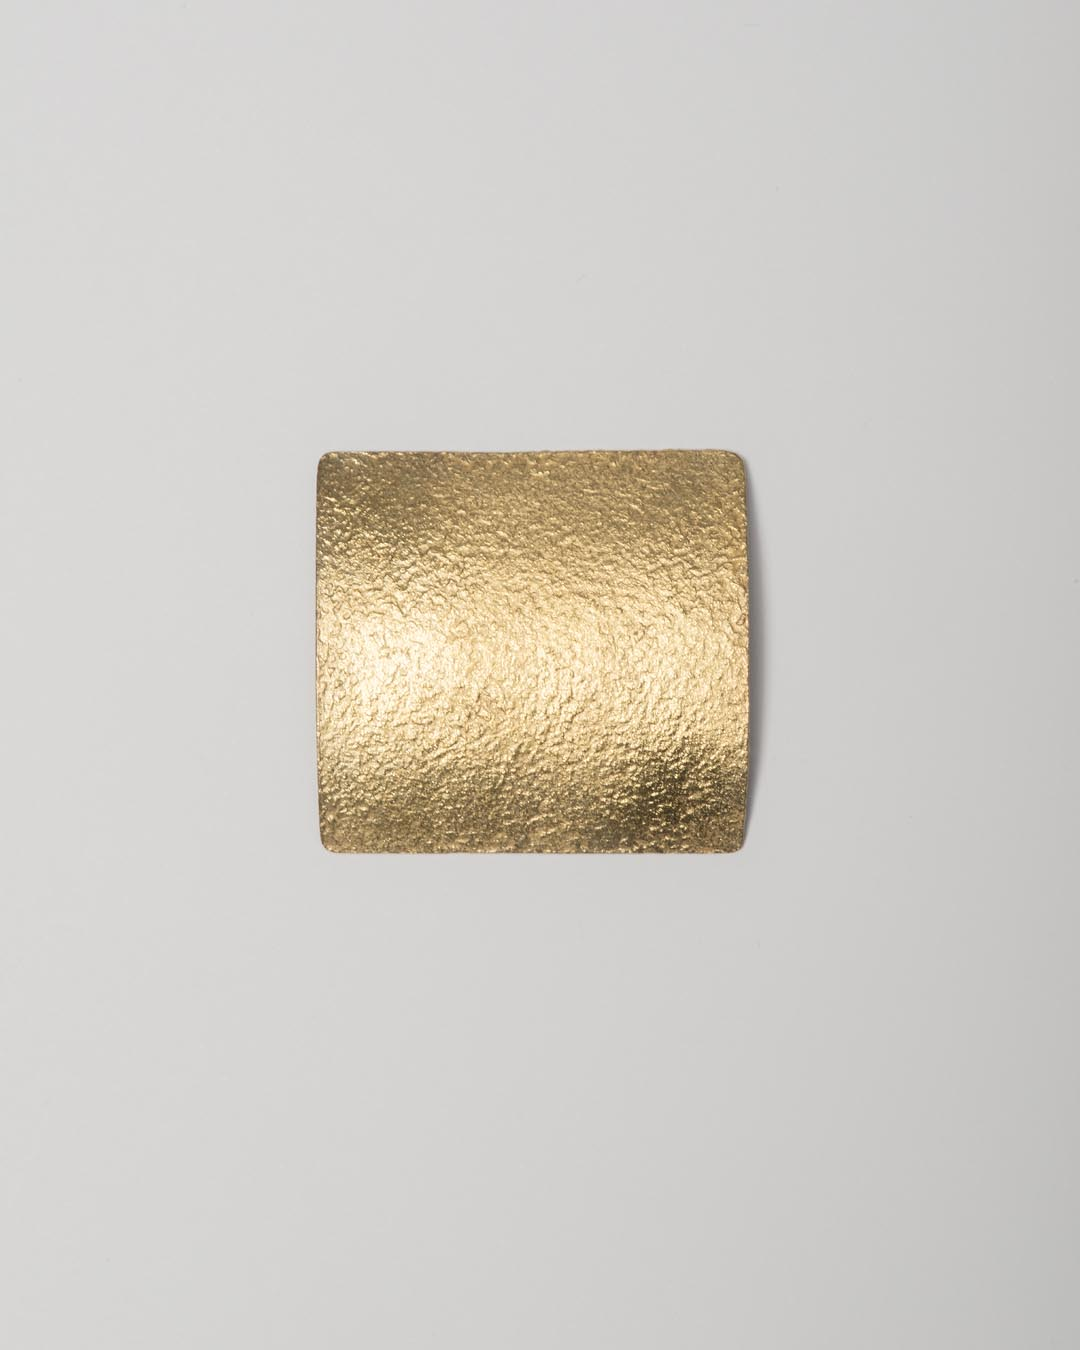 Yasuki Hiramatsu, untitled, brooch; gold-plated silver, 48 x 45 x 9 mm, €750